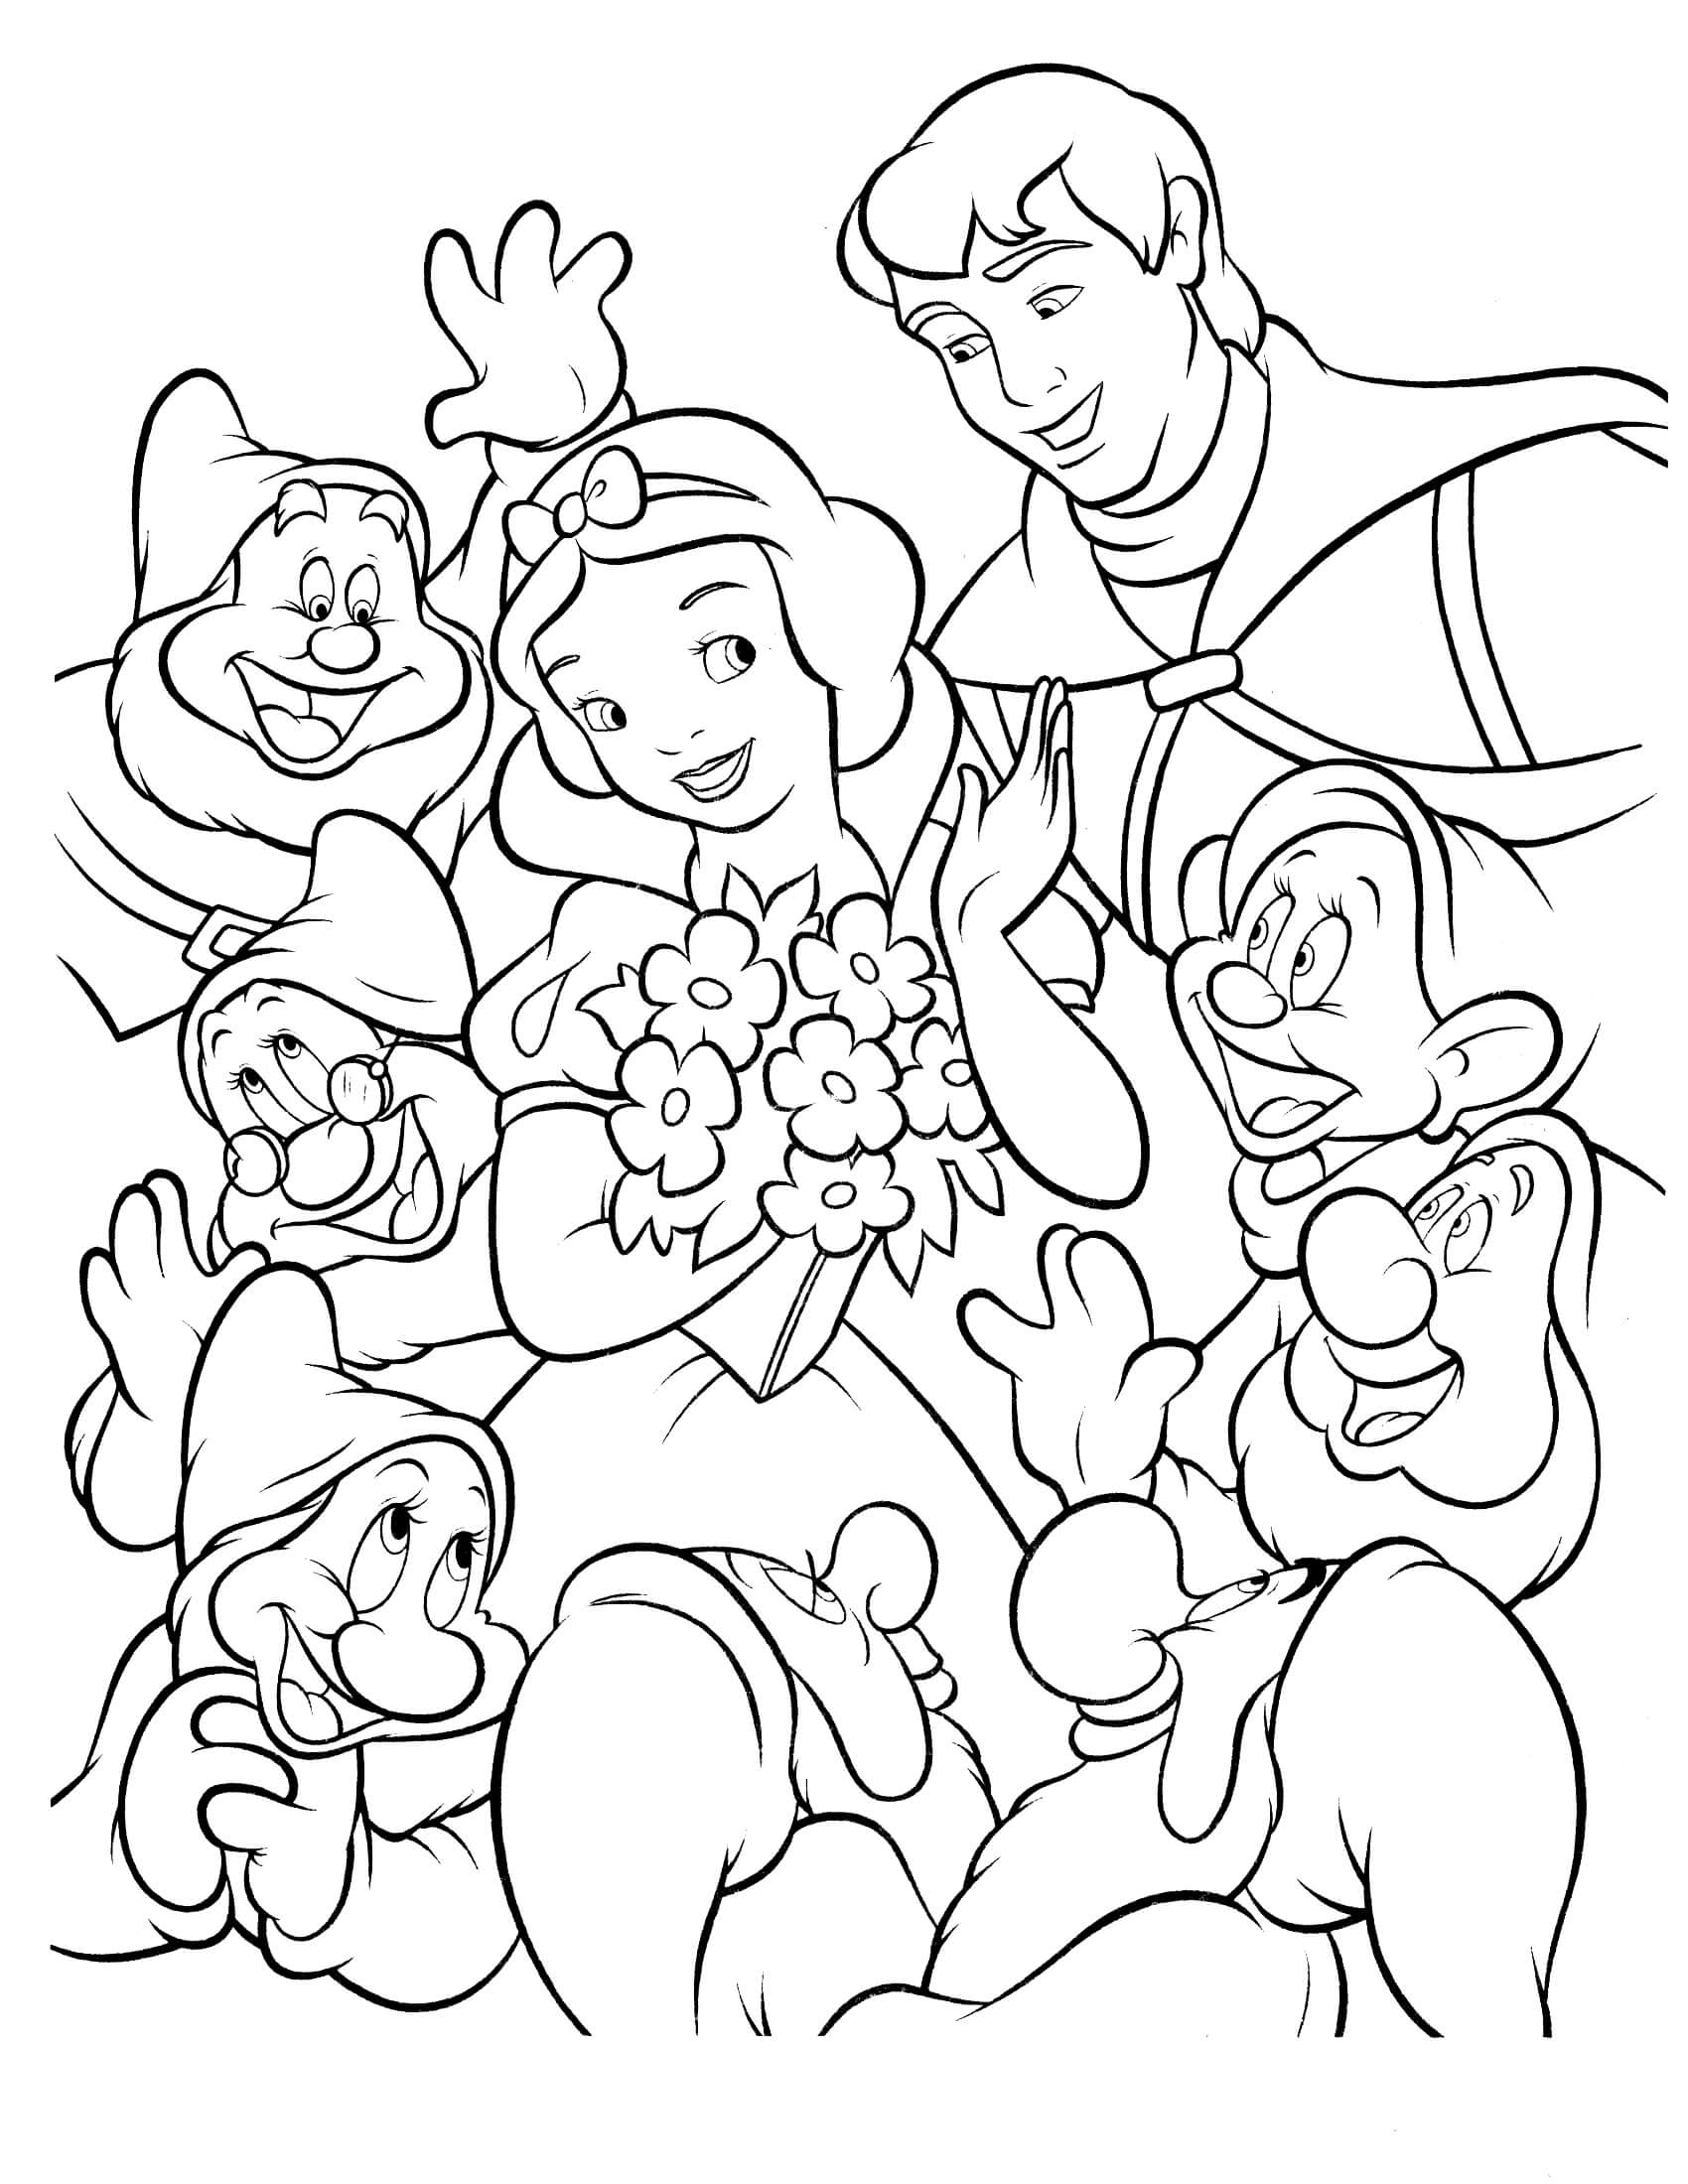 snowy coloring pages snow white coloring pages best coloring pages for kids pages snowy coloring